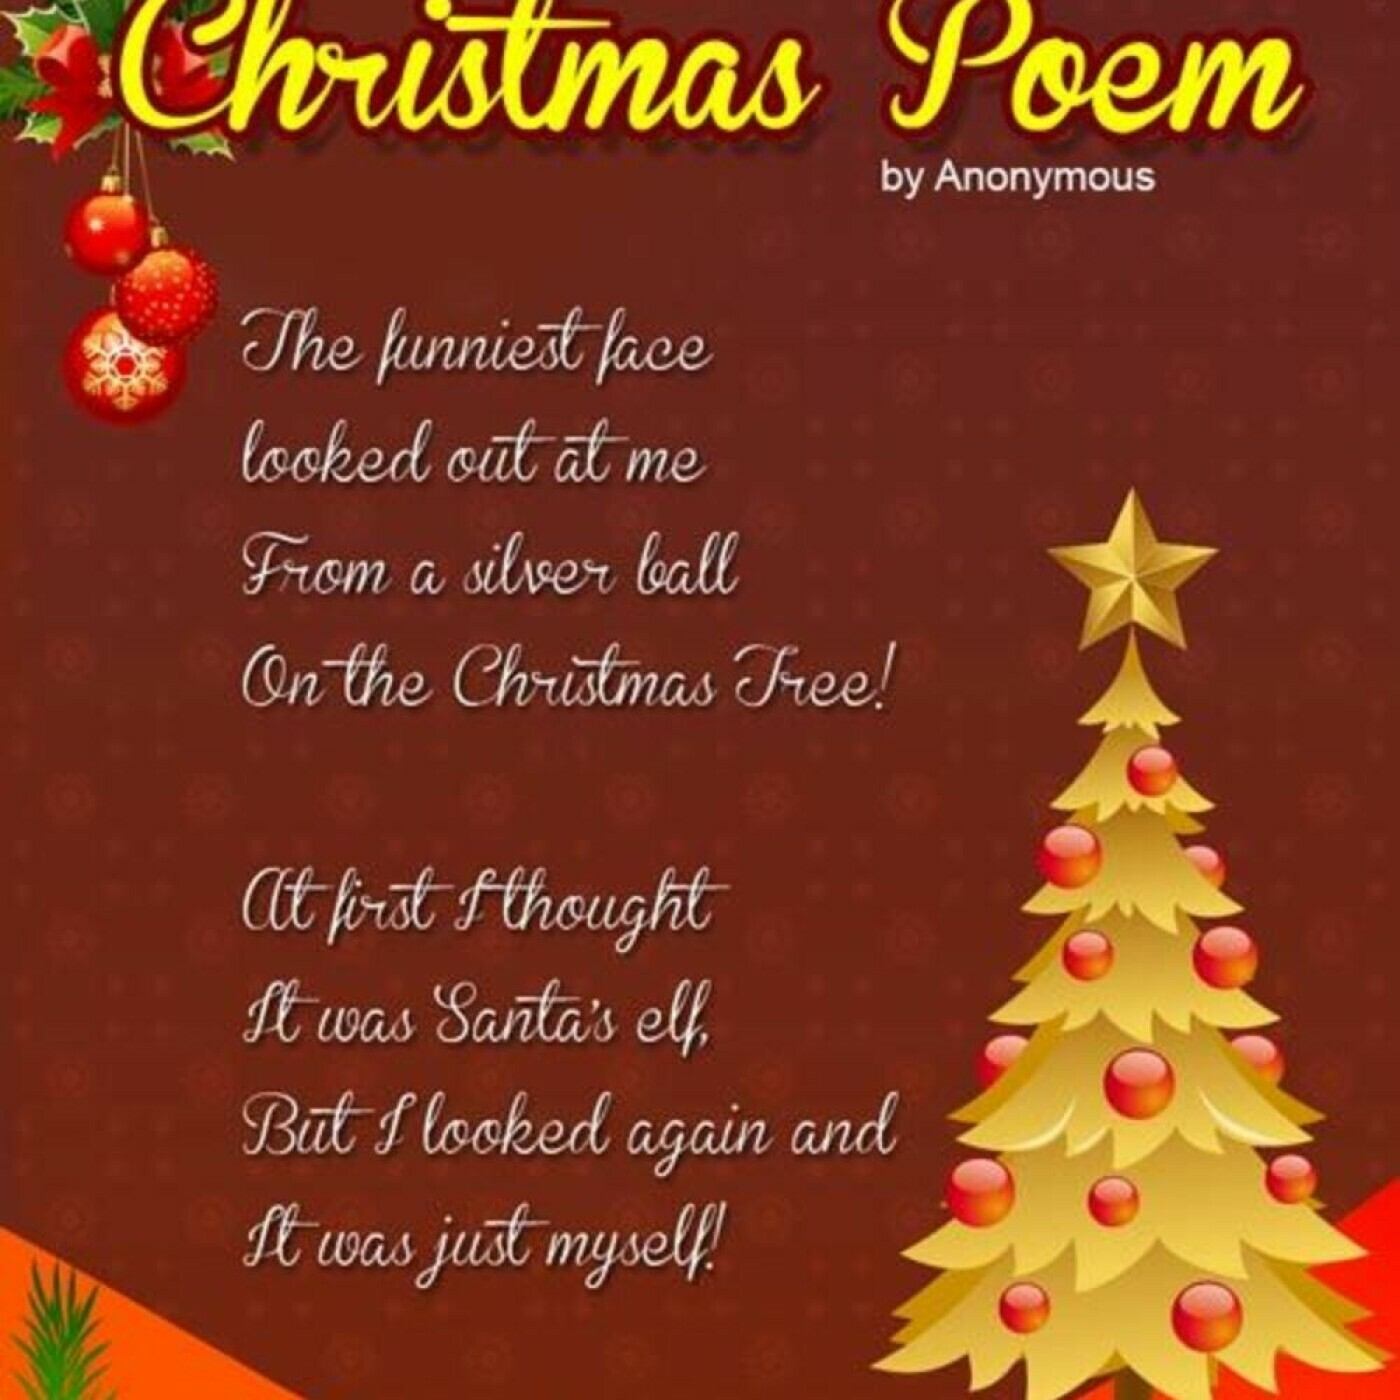 Christmas Eve Poem.Bad Christmas Poems 12 14 18 Podcast Co